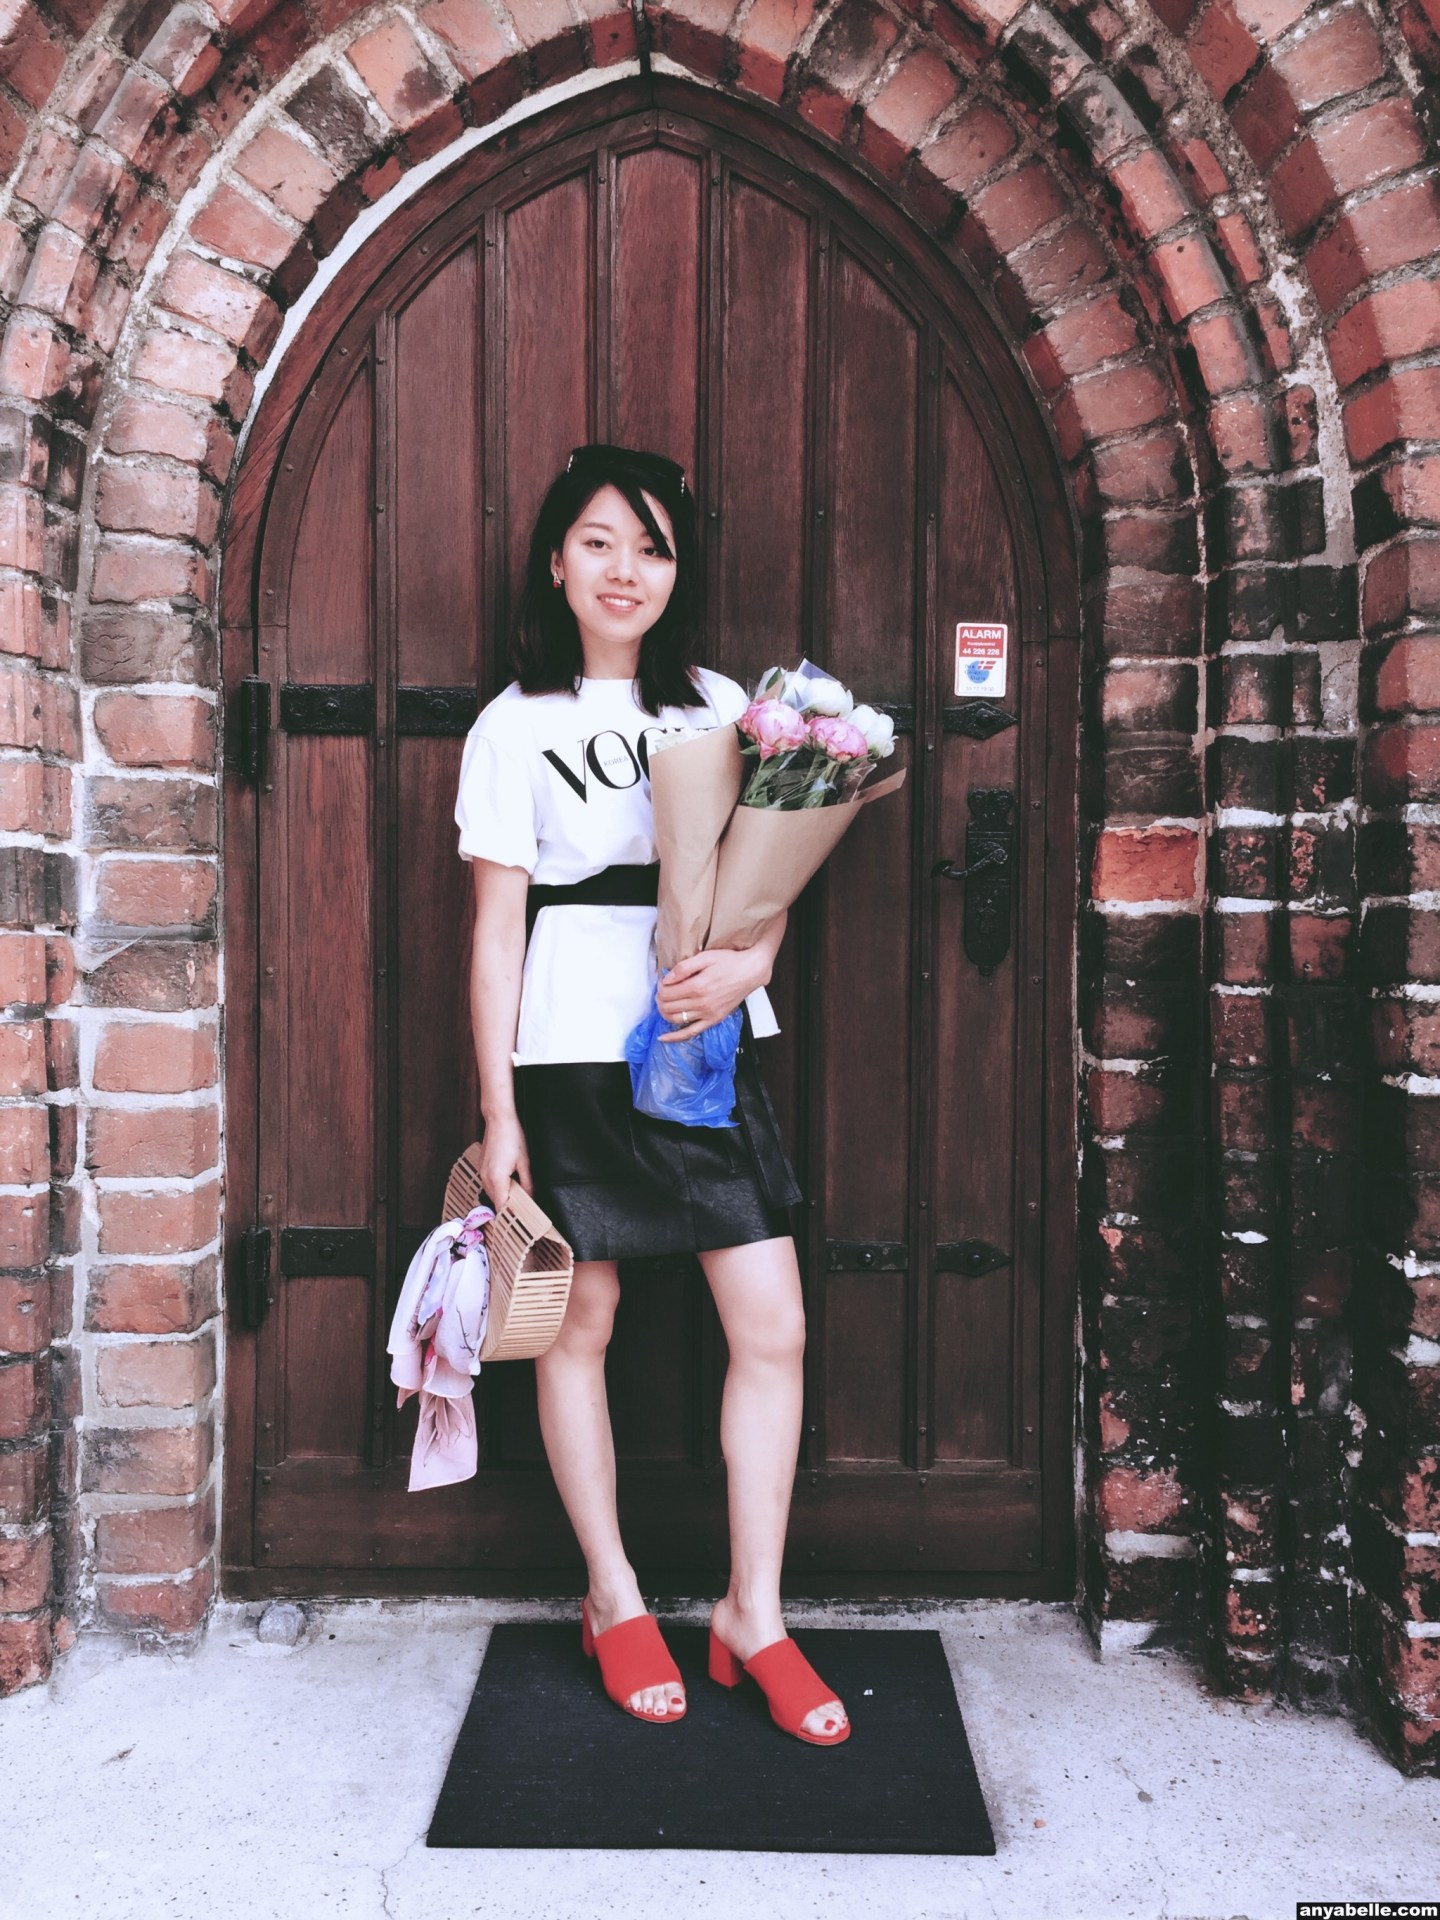 OOTD,Outfit of the day , Instagram, Blogger,Street Style, Style,Bamboo bag, Lifestyle, Outfit, Fashion,Holiday style, Coffee, Flower,Europe,每日穿搭,时尚博主,生活方式,街拍,风格, 穿搭,时尚,咖啡, Ins风, 竹包 ,鲜花,欧洲